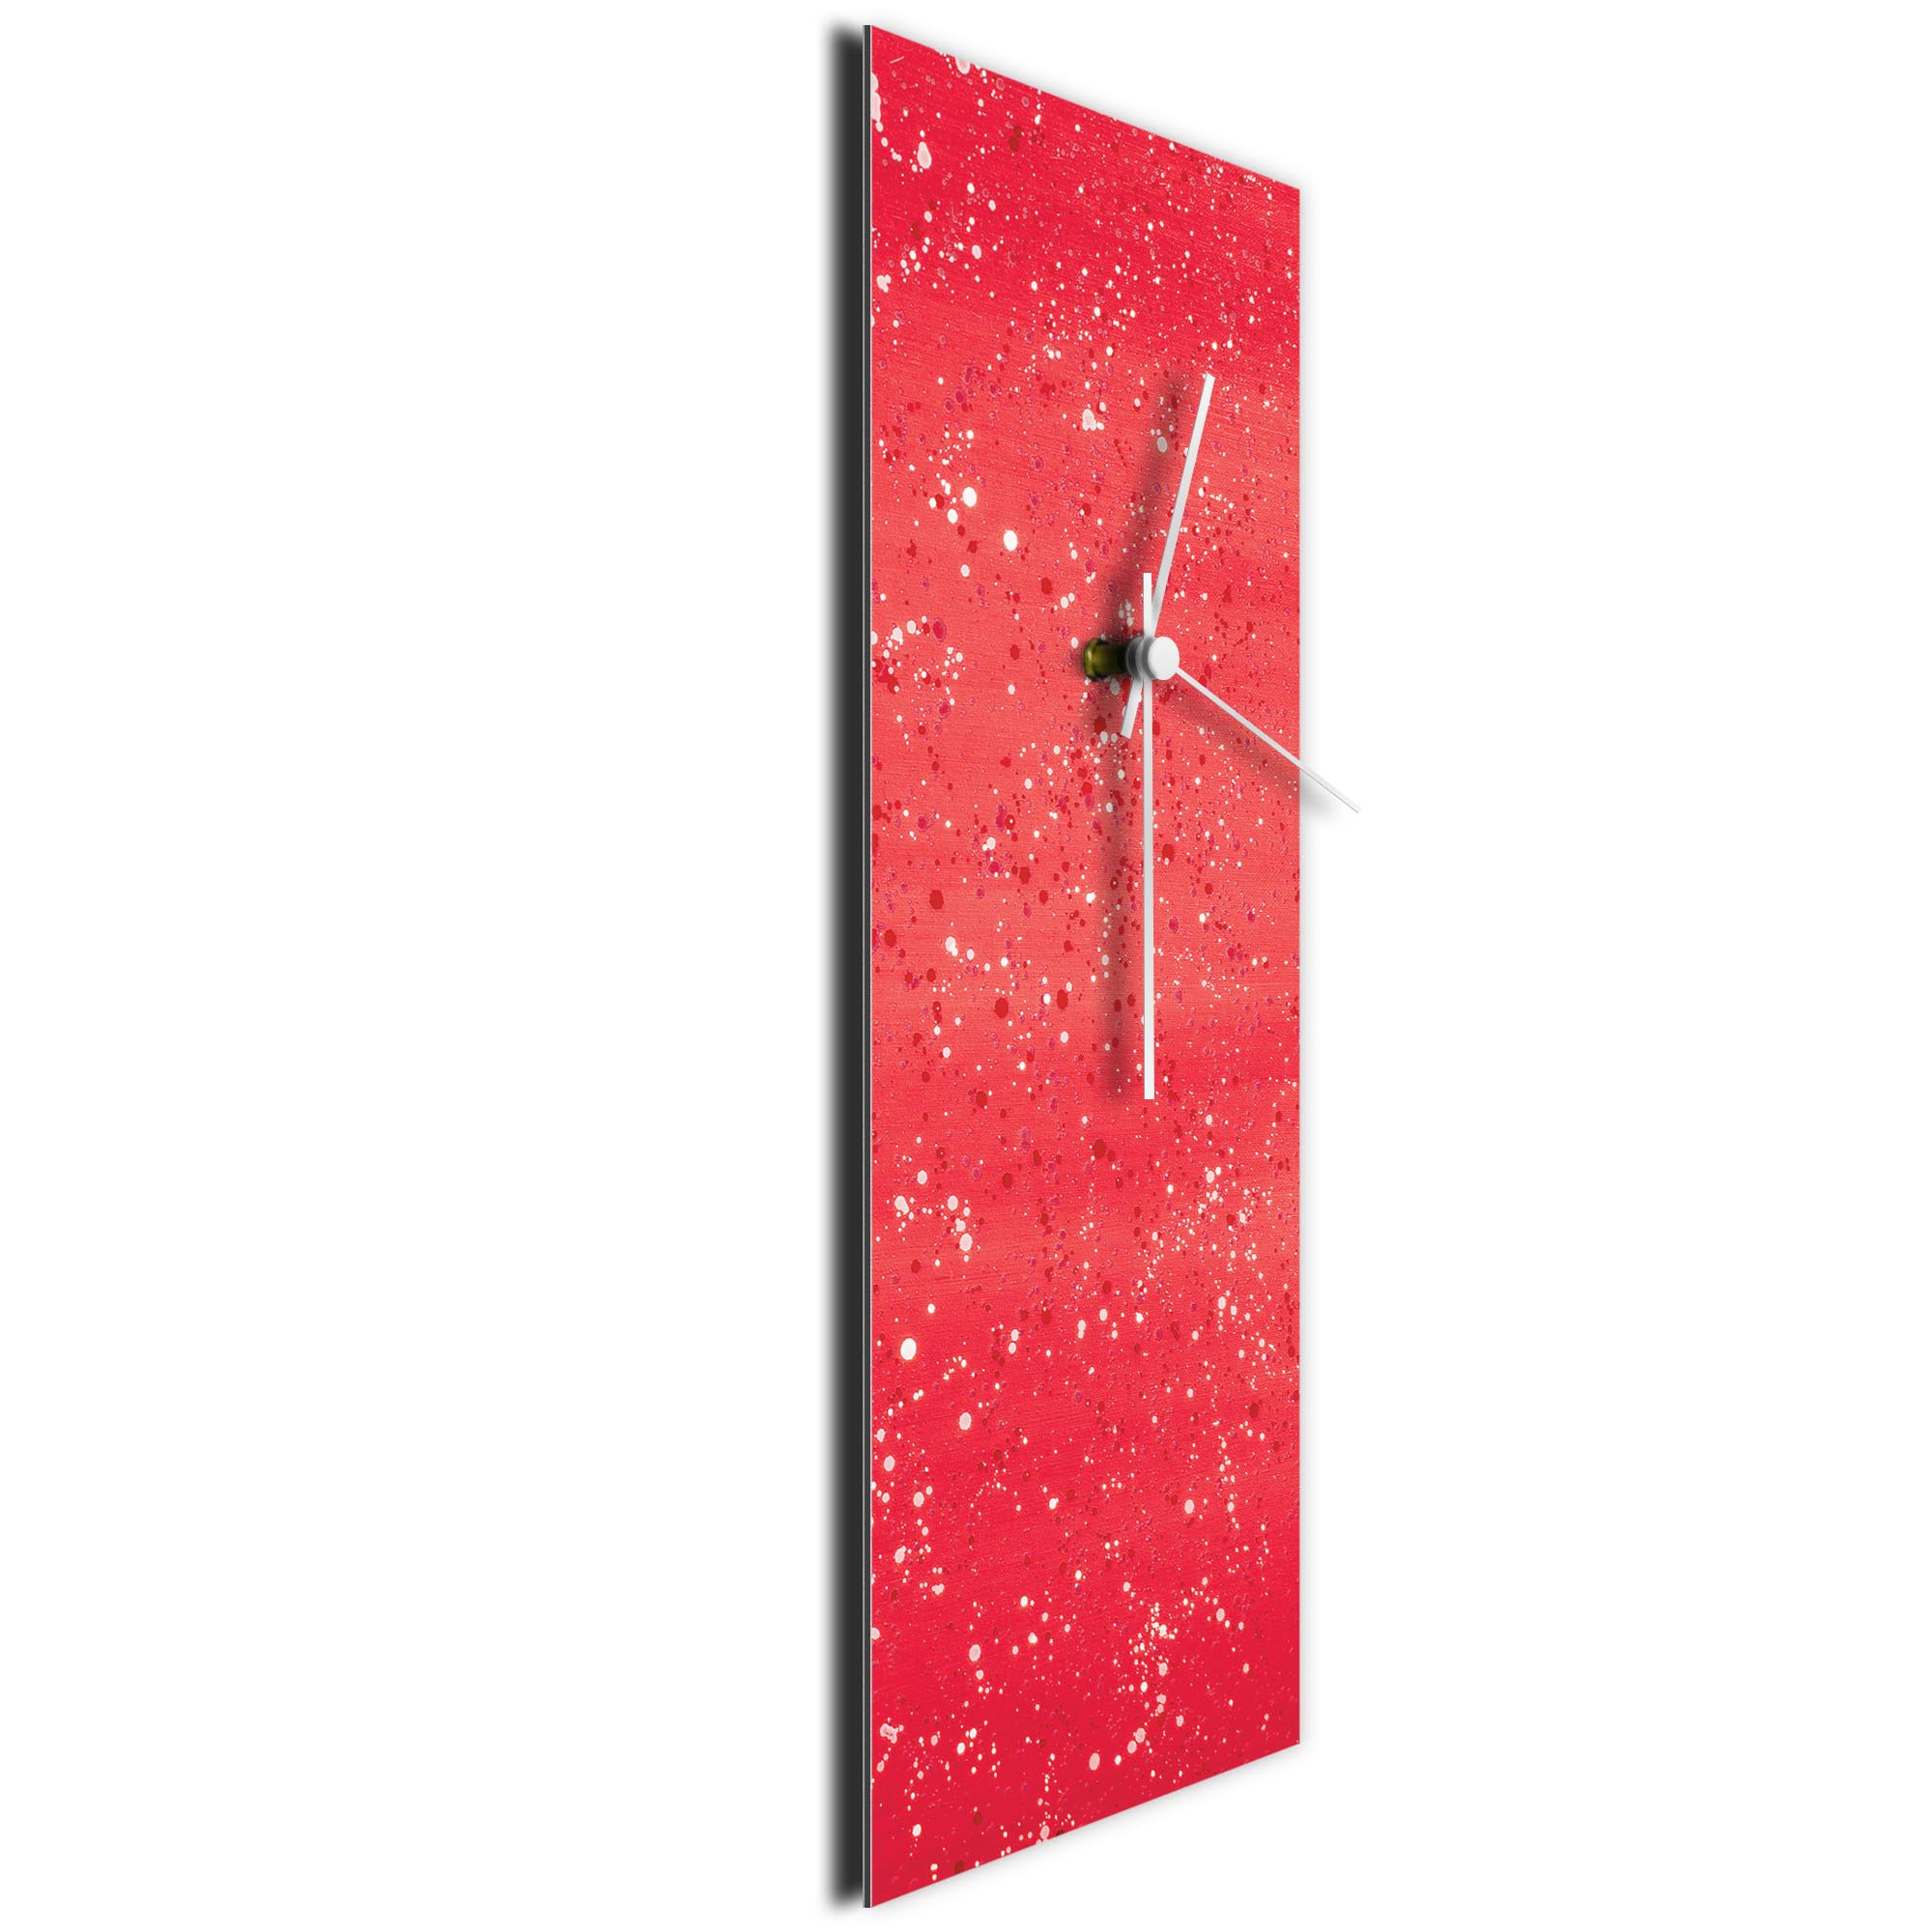 Red Flecked Clock by Mendo Vasilevski - Urban Abstract Home Decor - Image 3